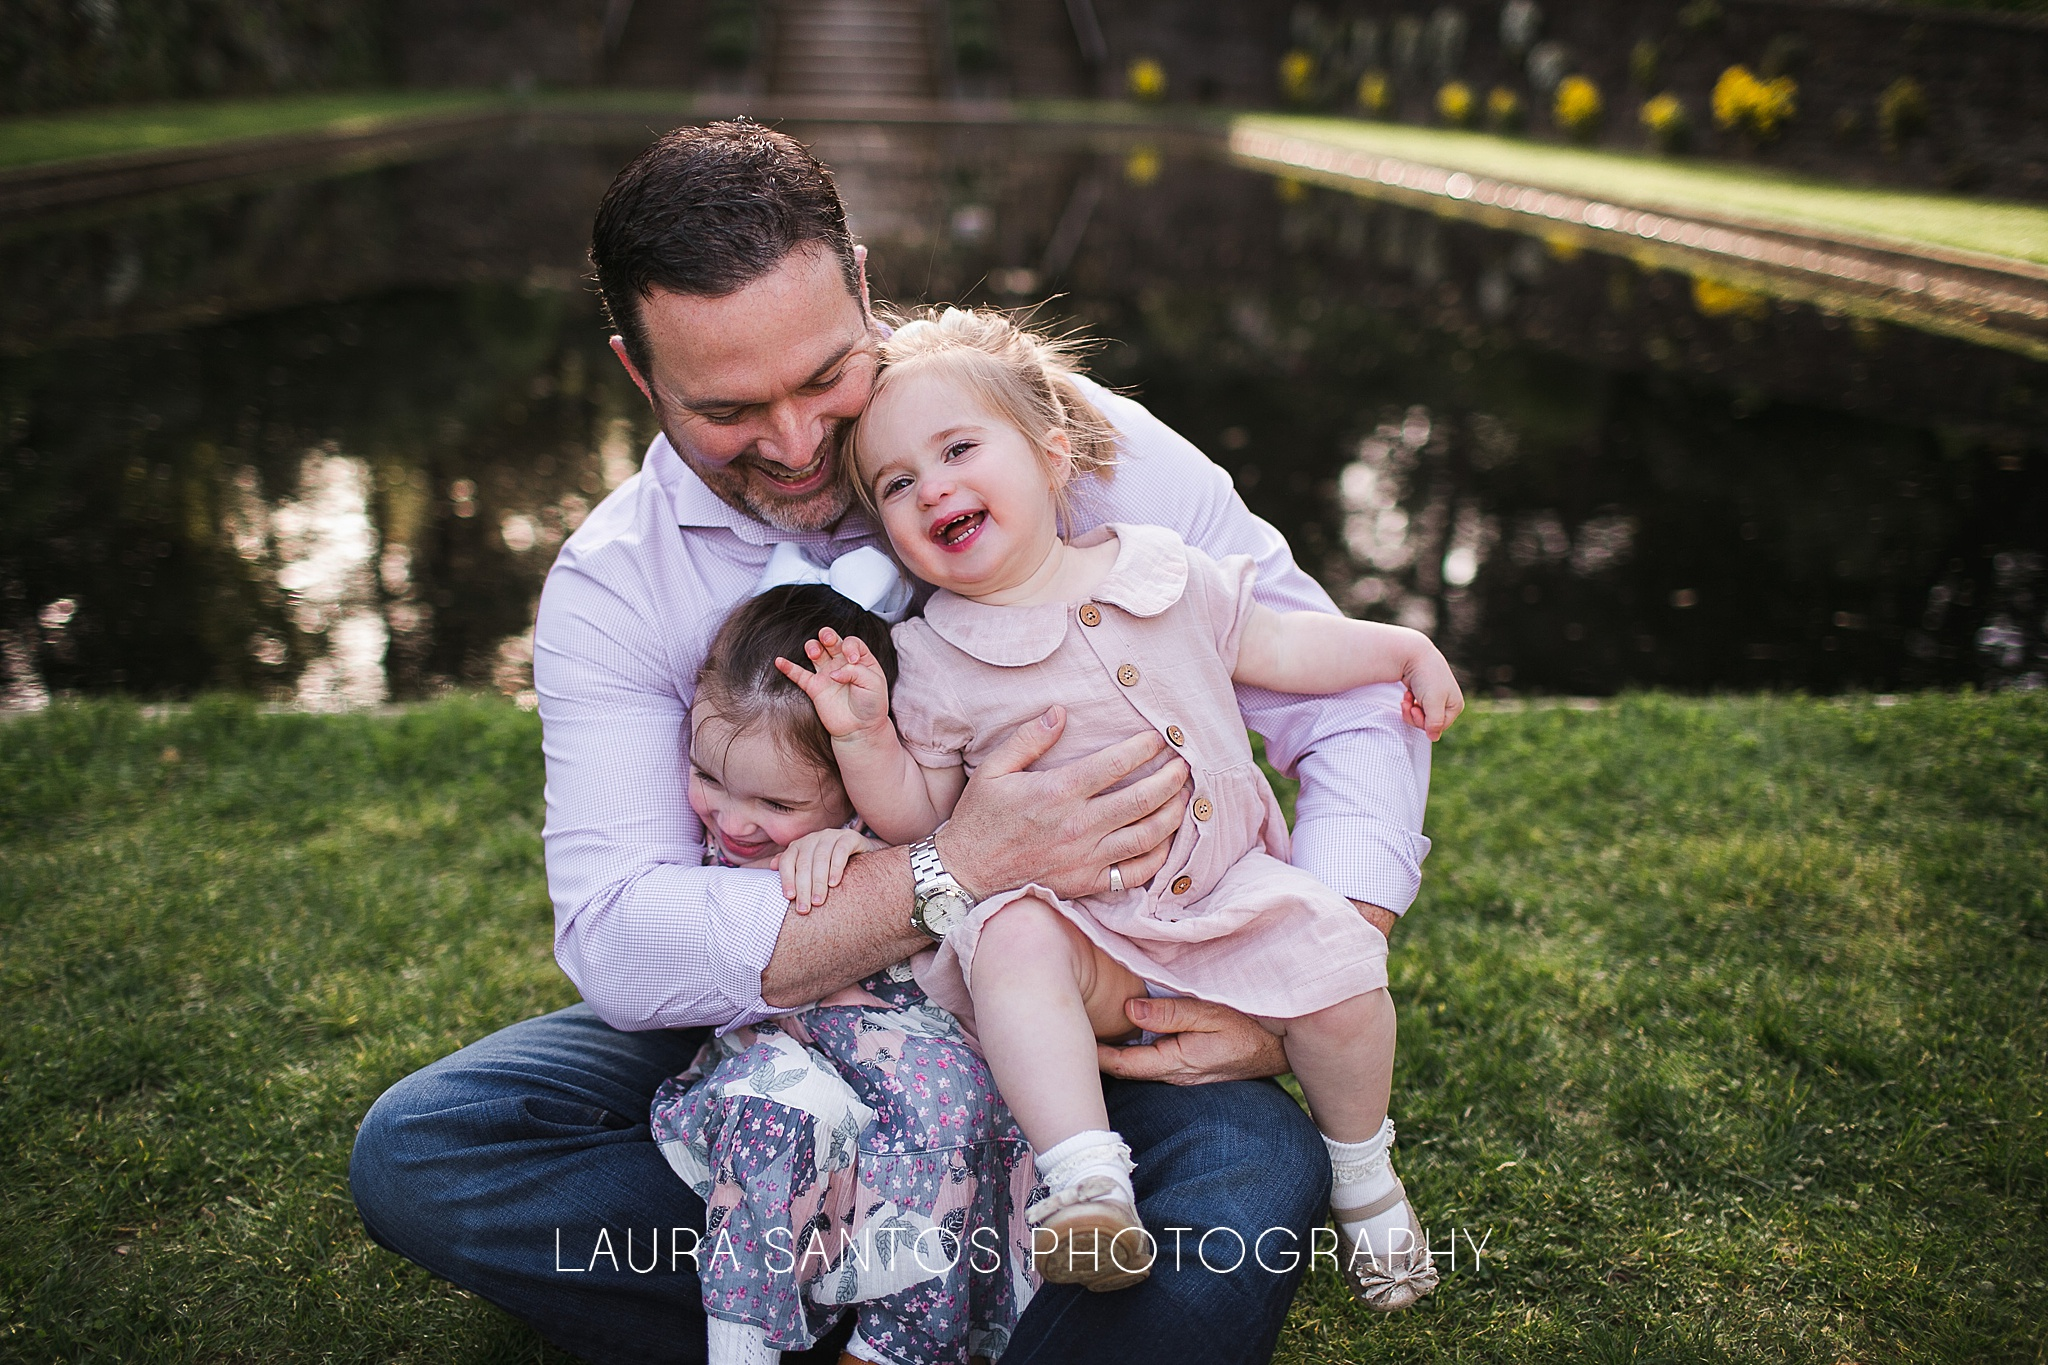 Laura Santos Photography Portland Oregon Family Photographer_0918.jpg